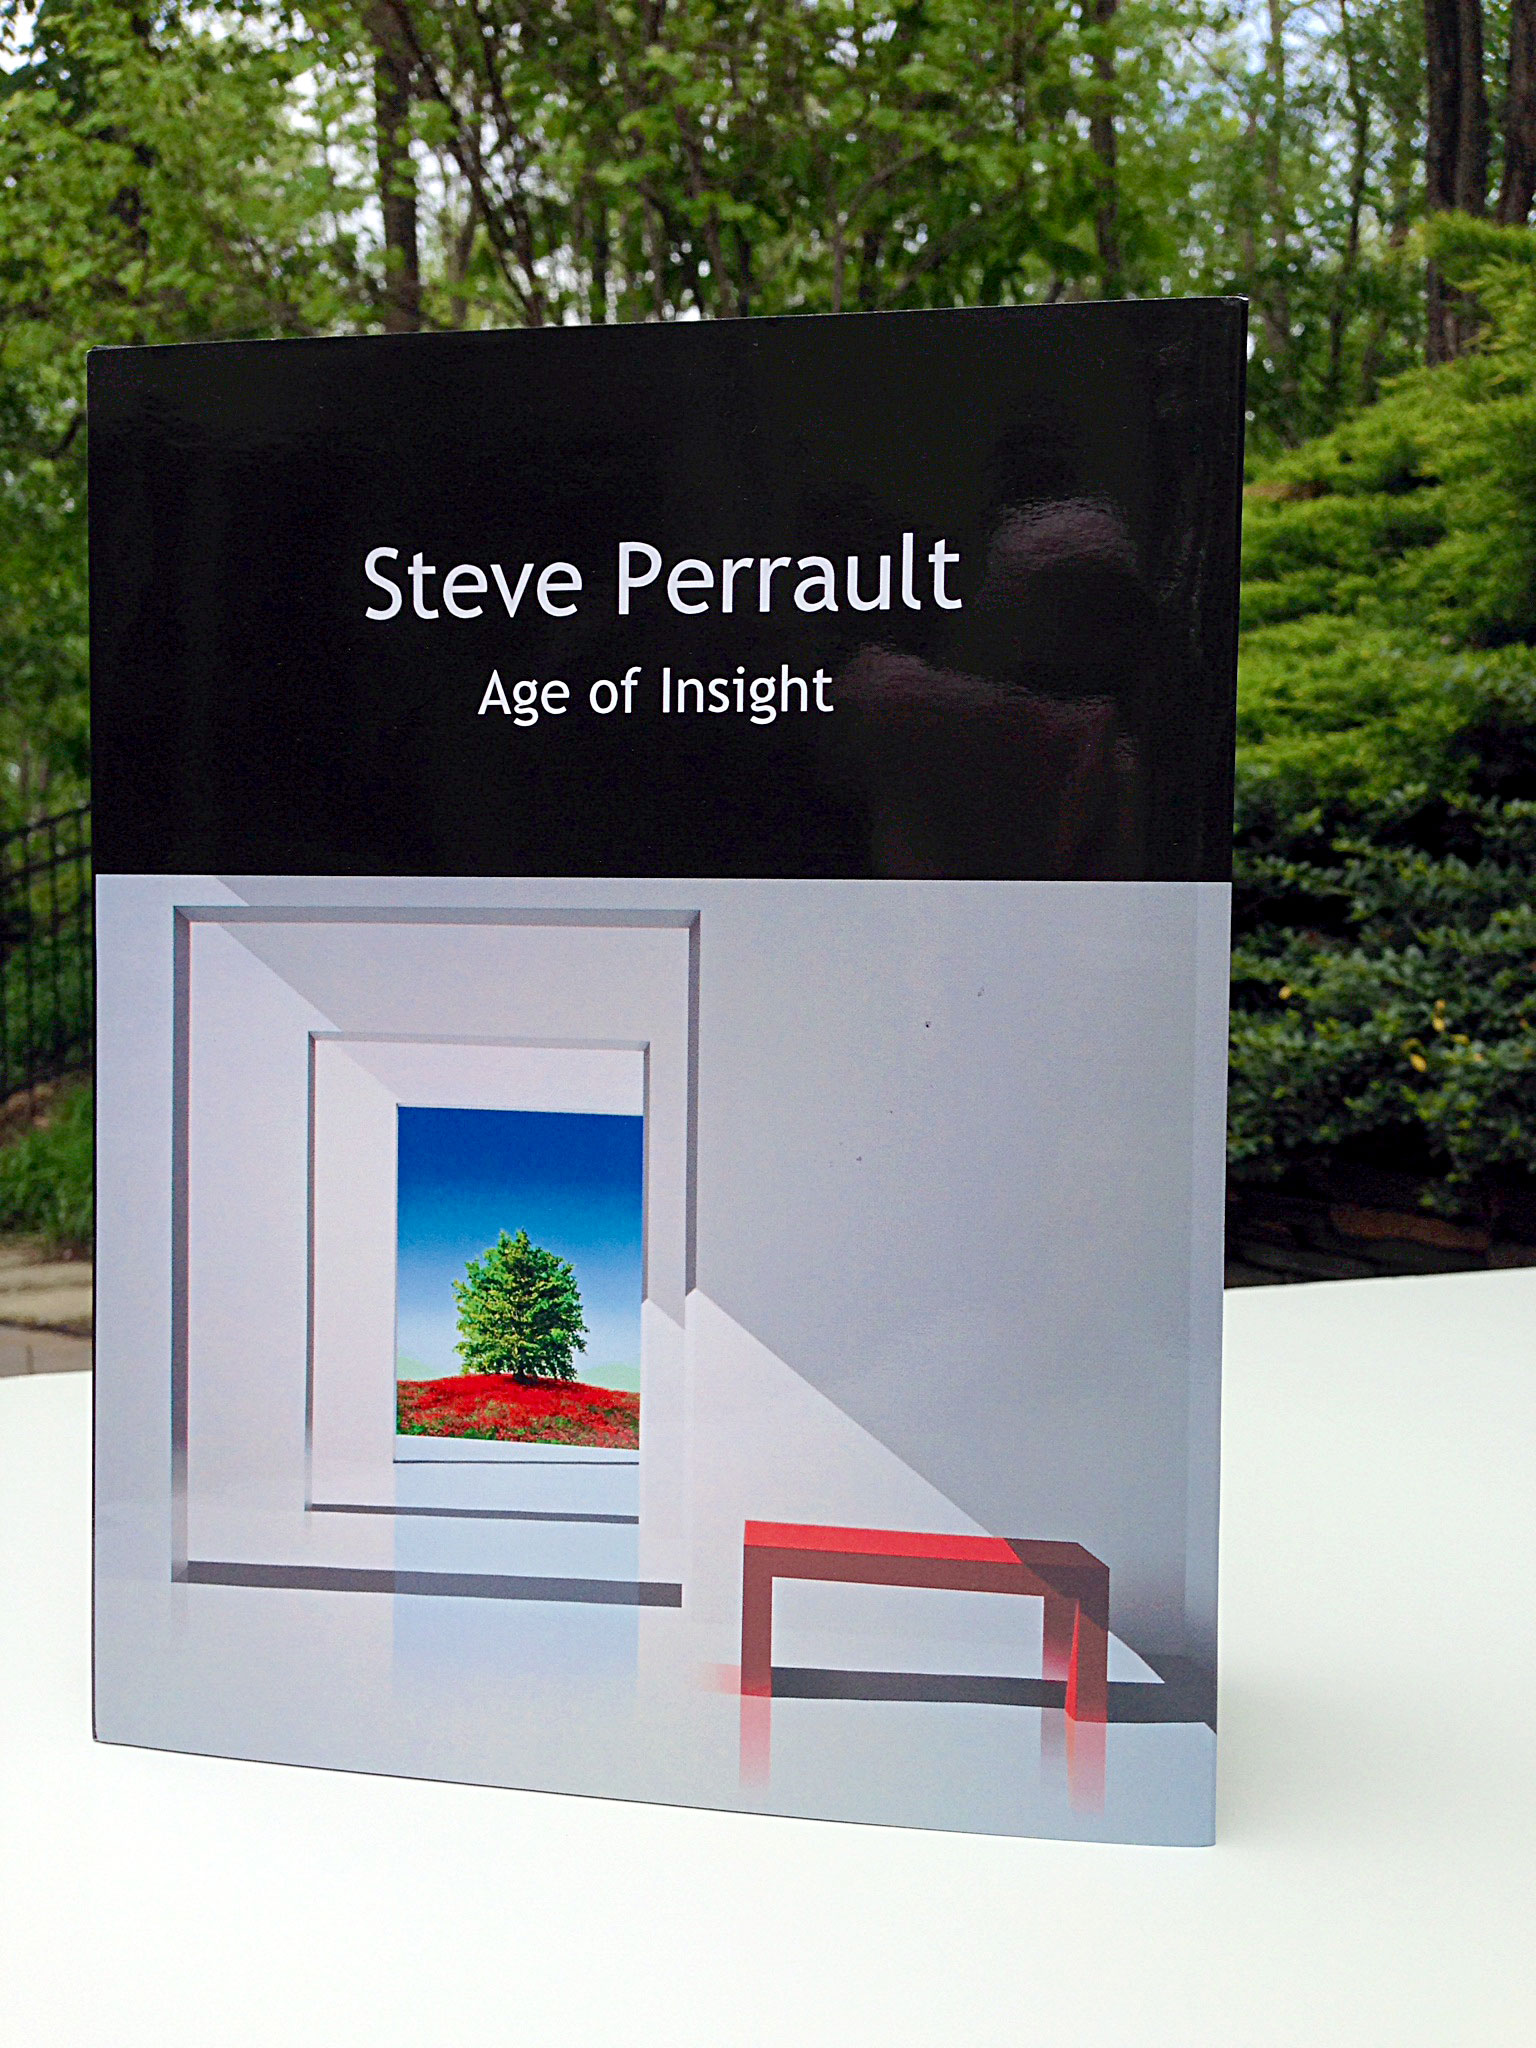 Steve Perrault, Age of Insight